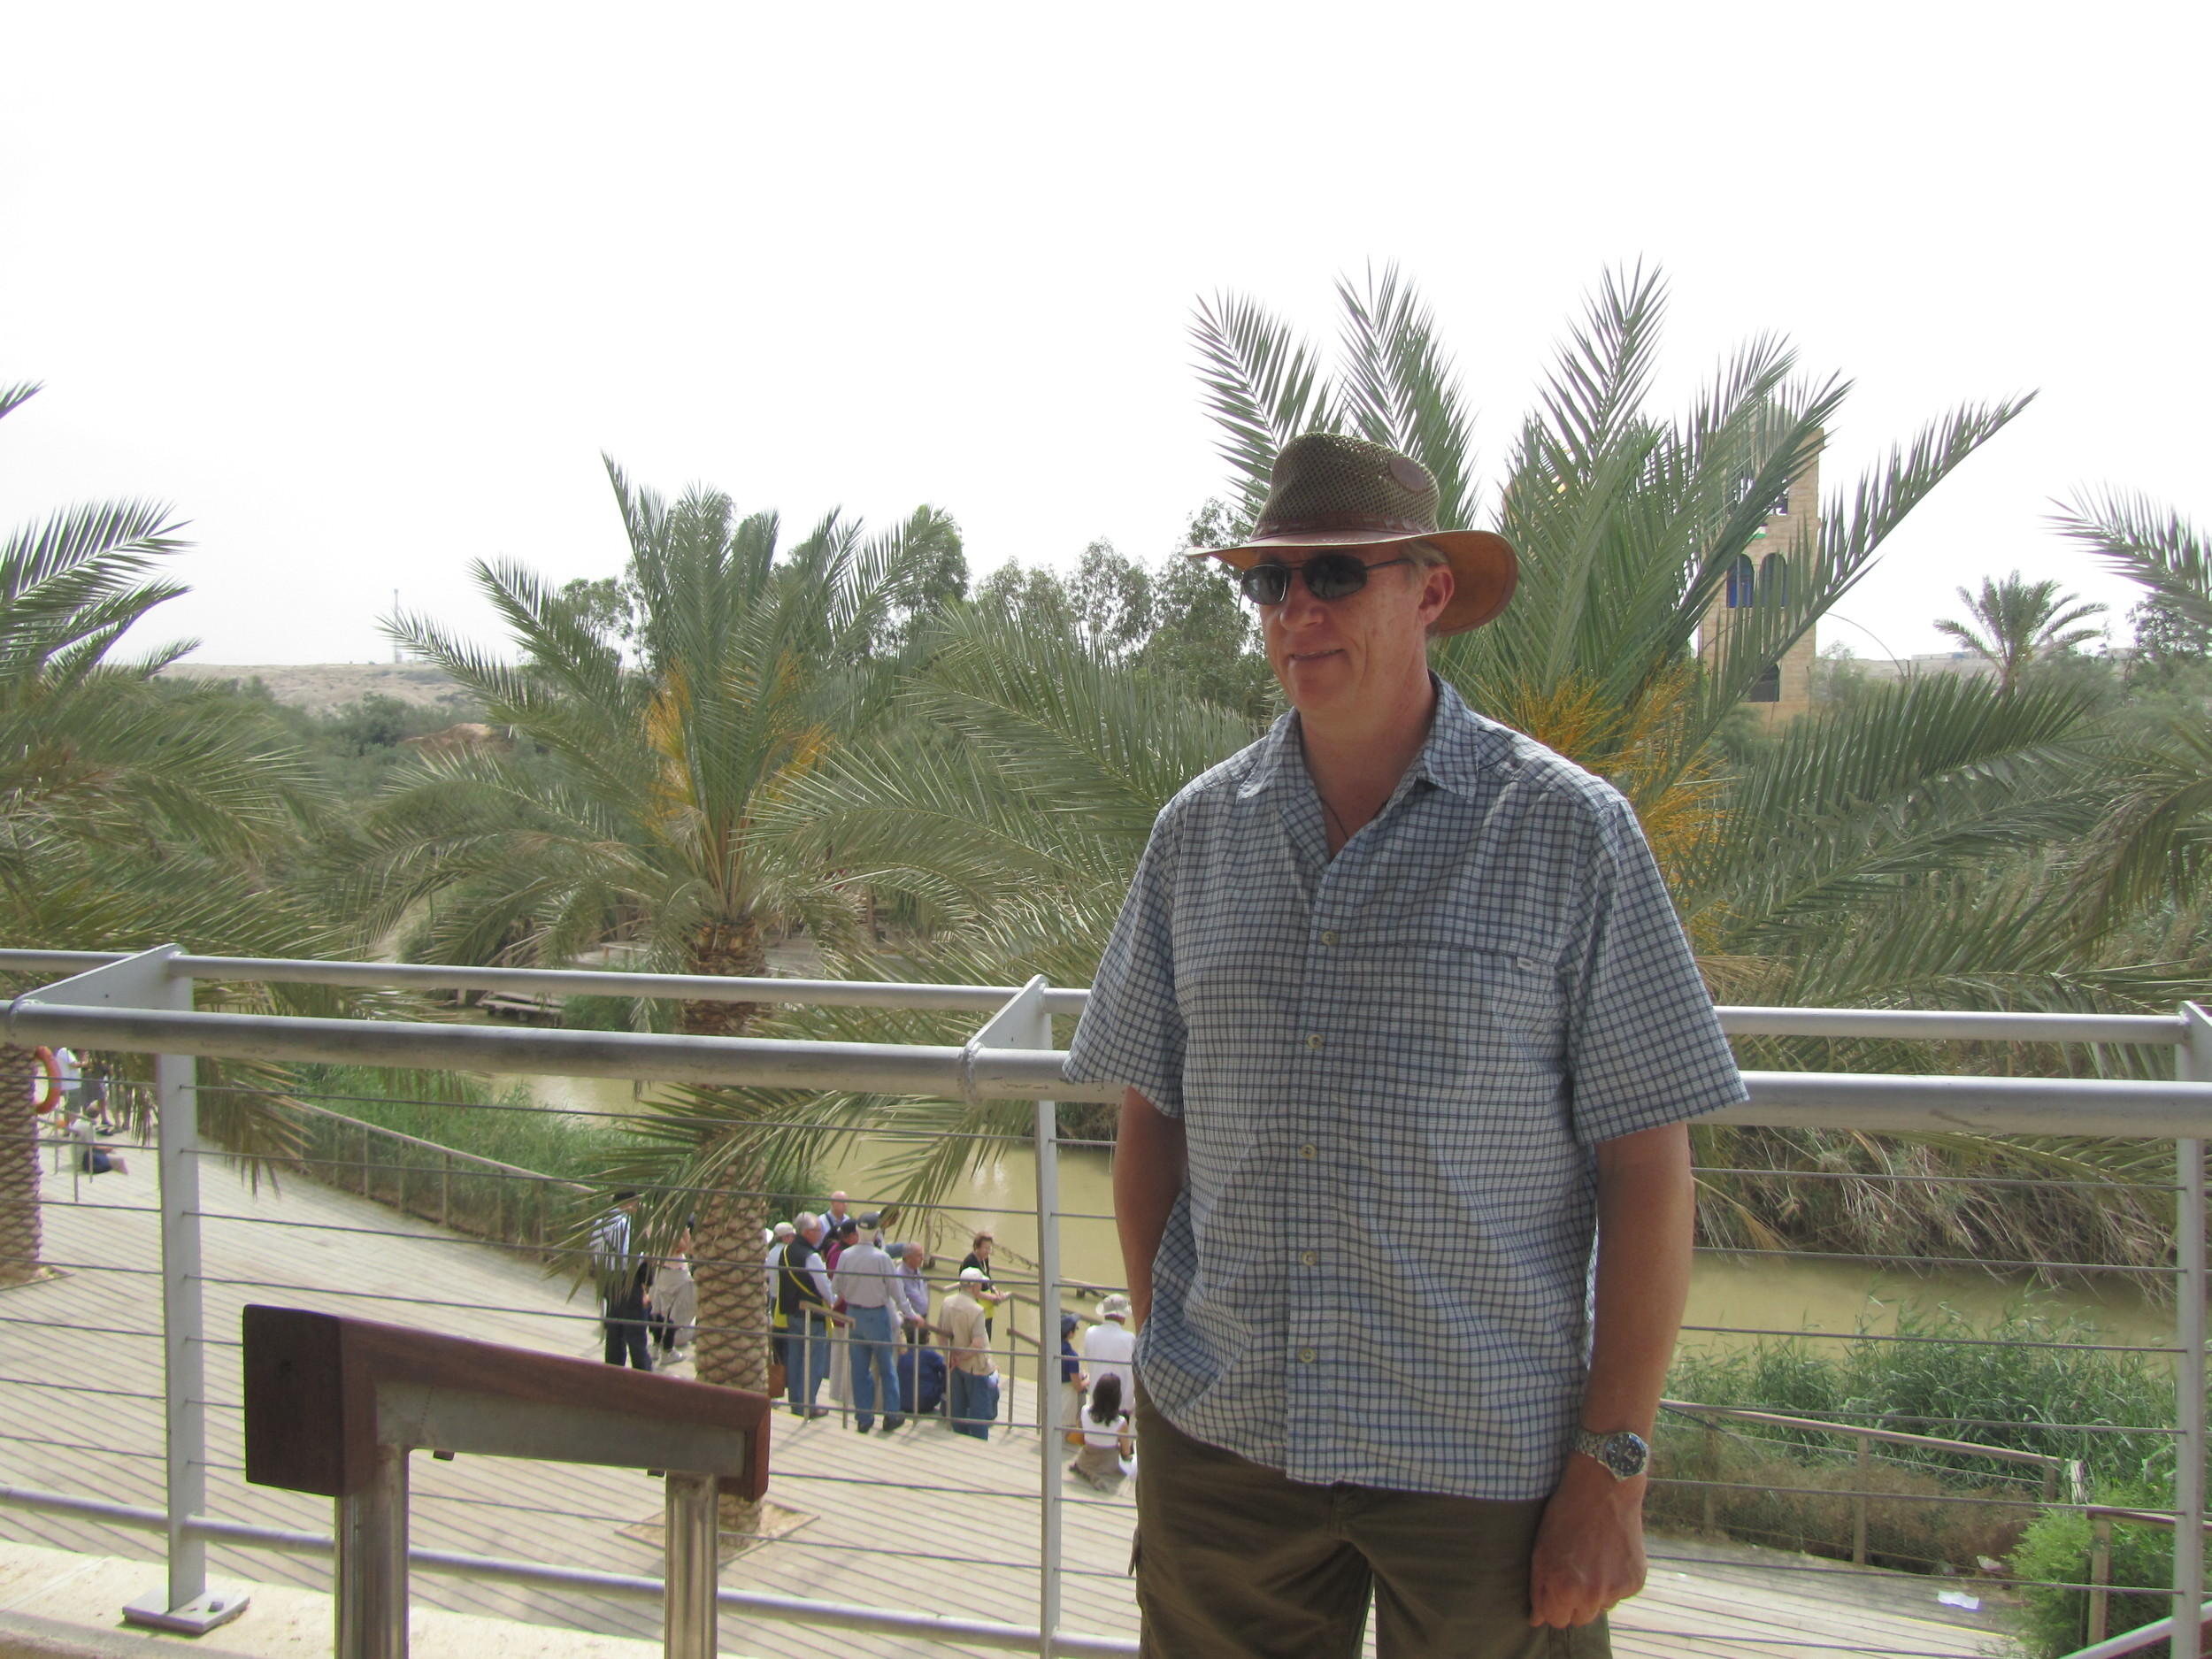 Mike Breen teaching on the Baptism of Jesus at the edge of the Jordan River